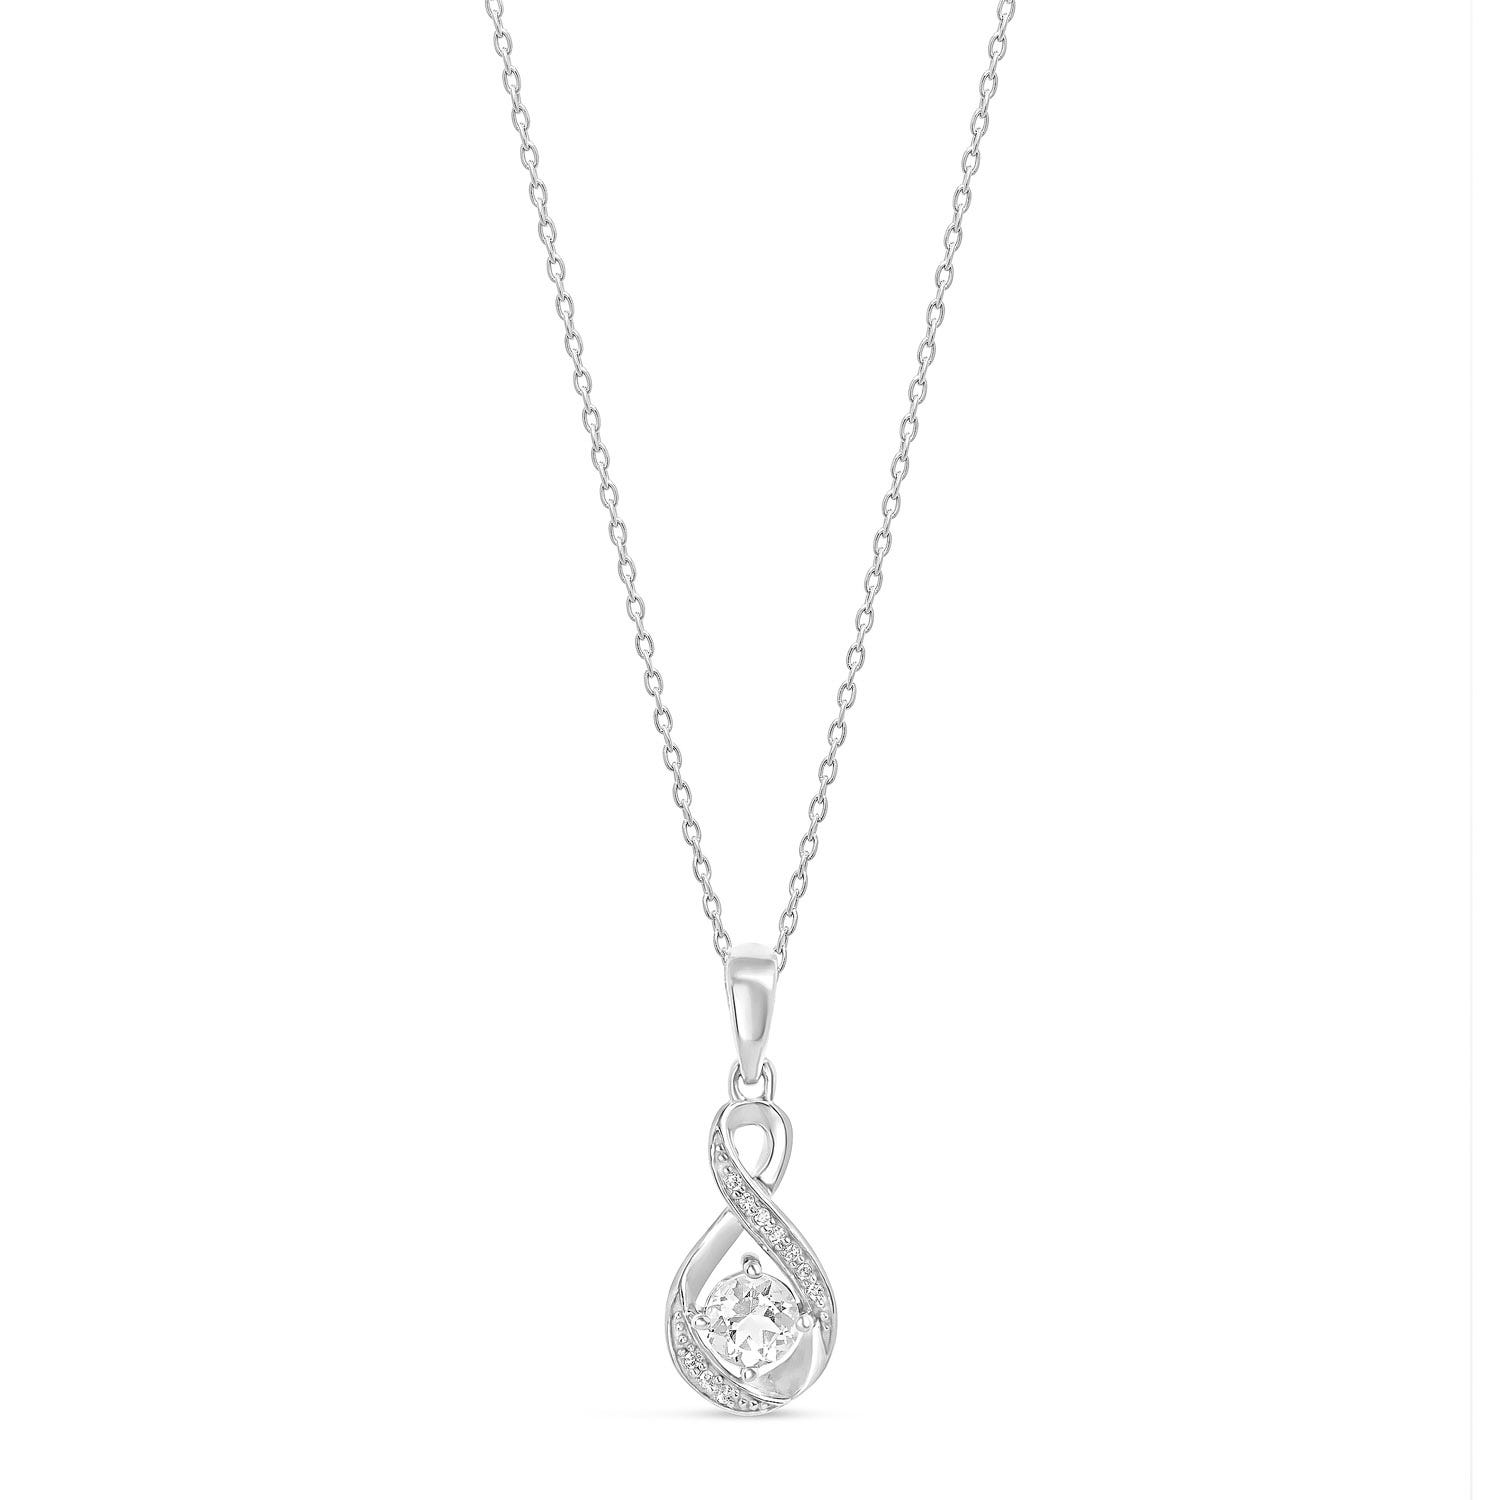 Sterling Silver and Cubic Zirconia April Birthstone Pendant